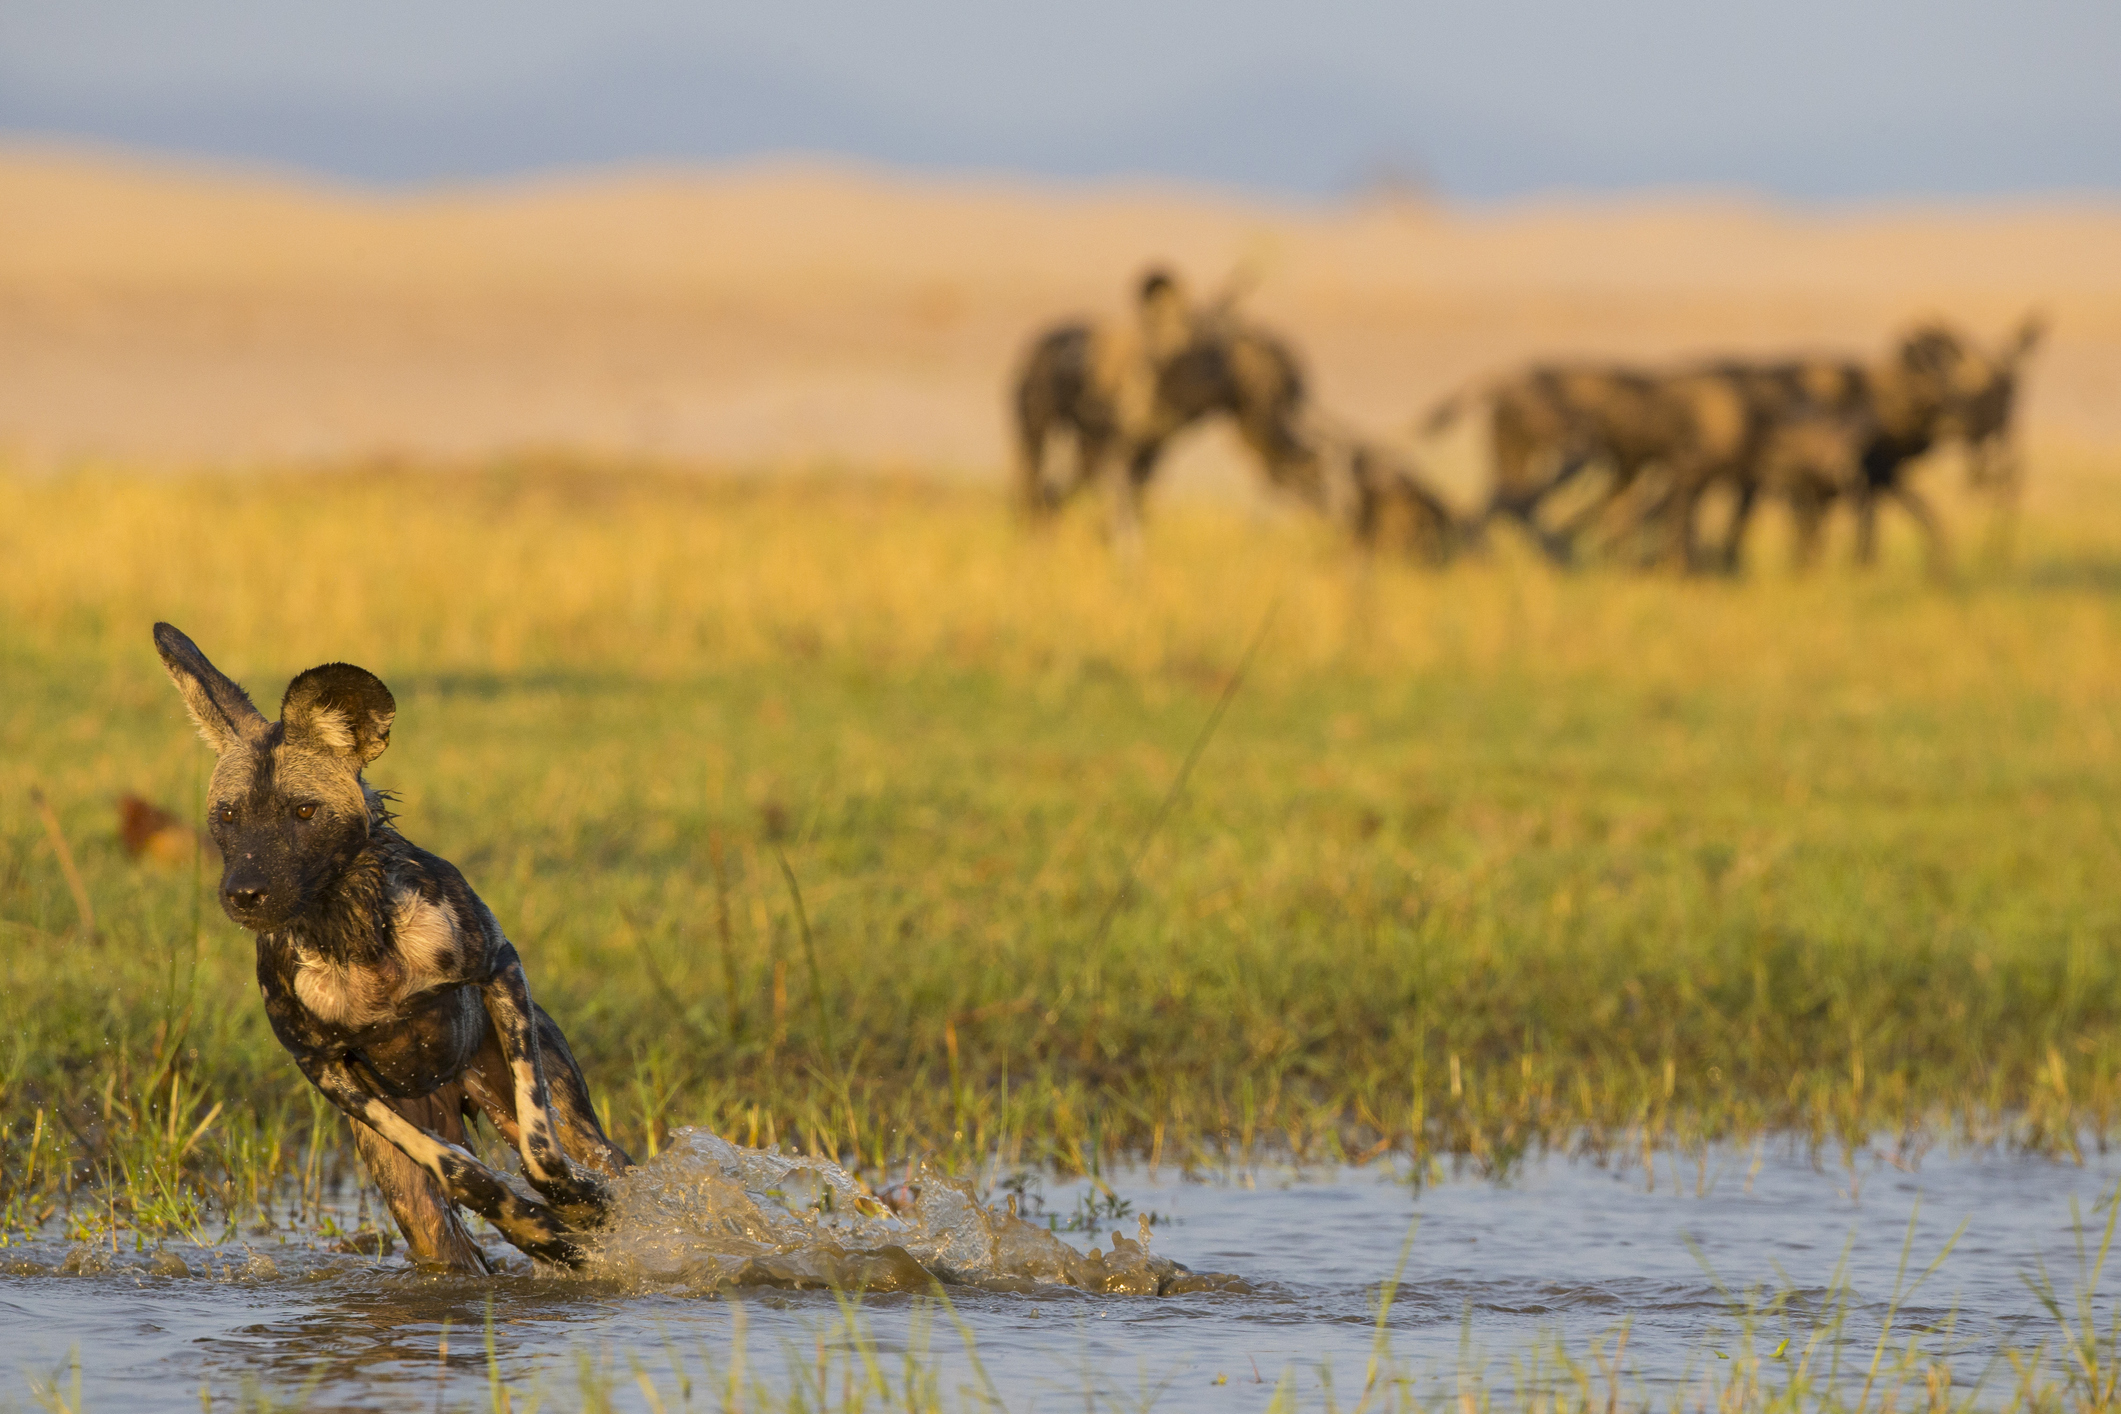 NU Borders' BITE Platform uses Advanced Analytics to Support Anti-Poaching in Southern Africa